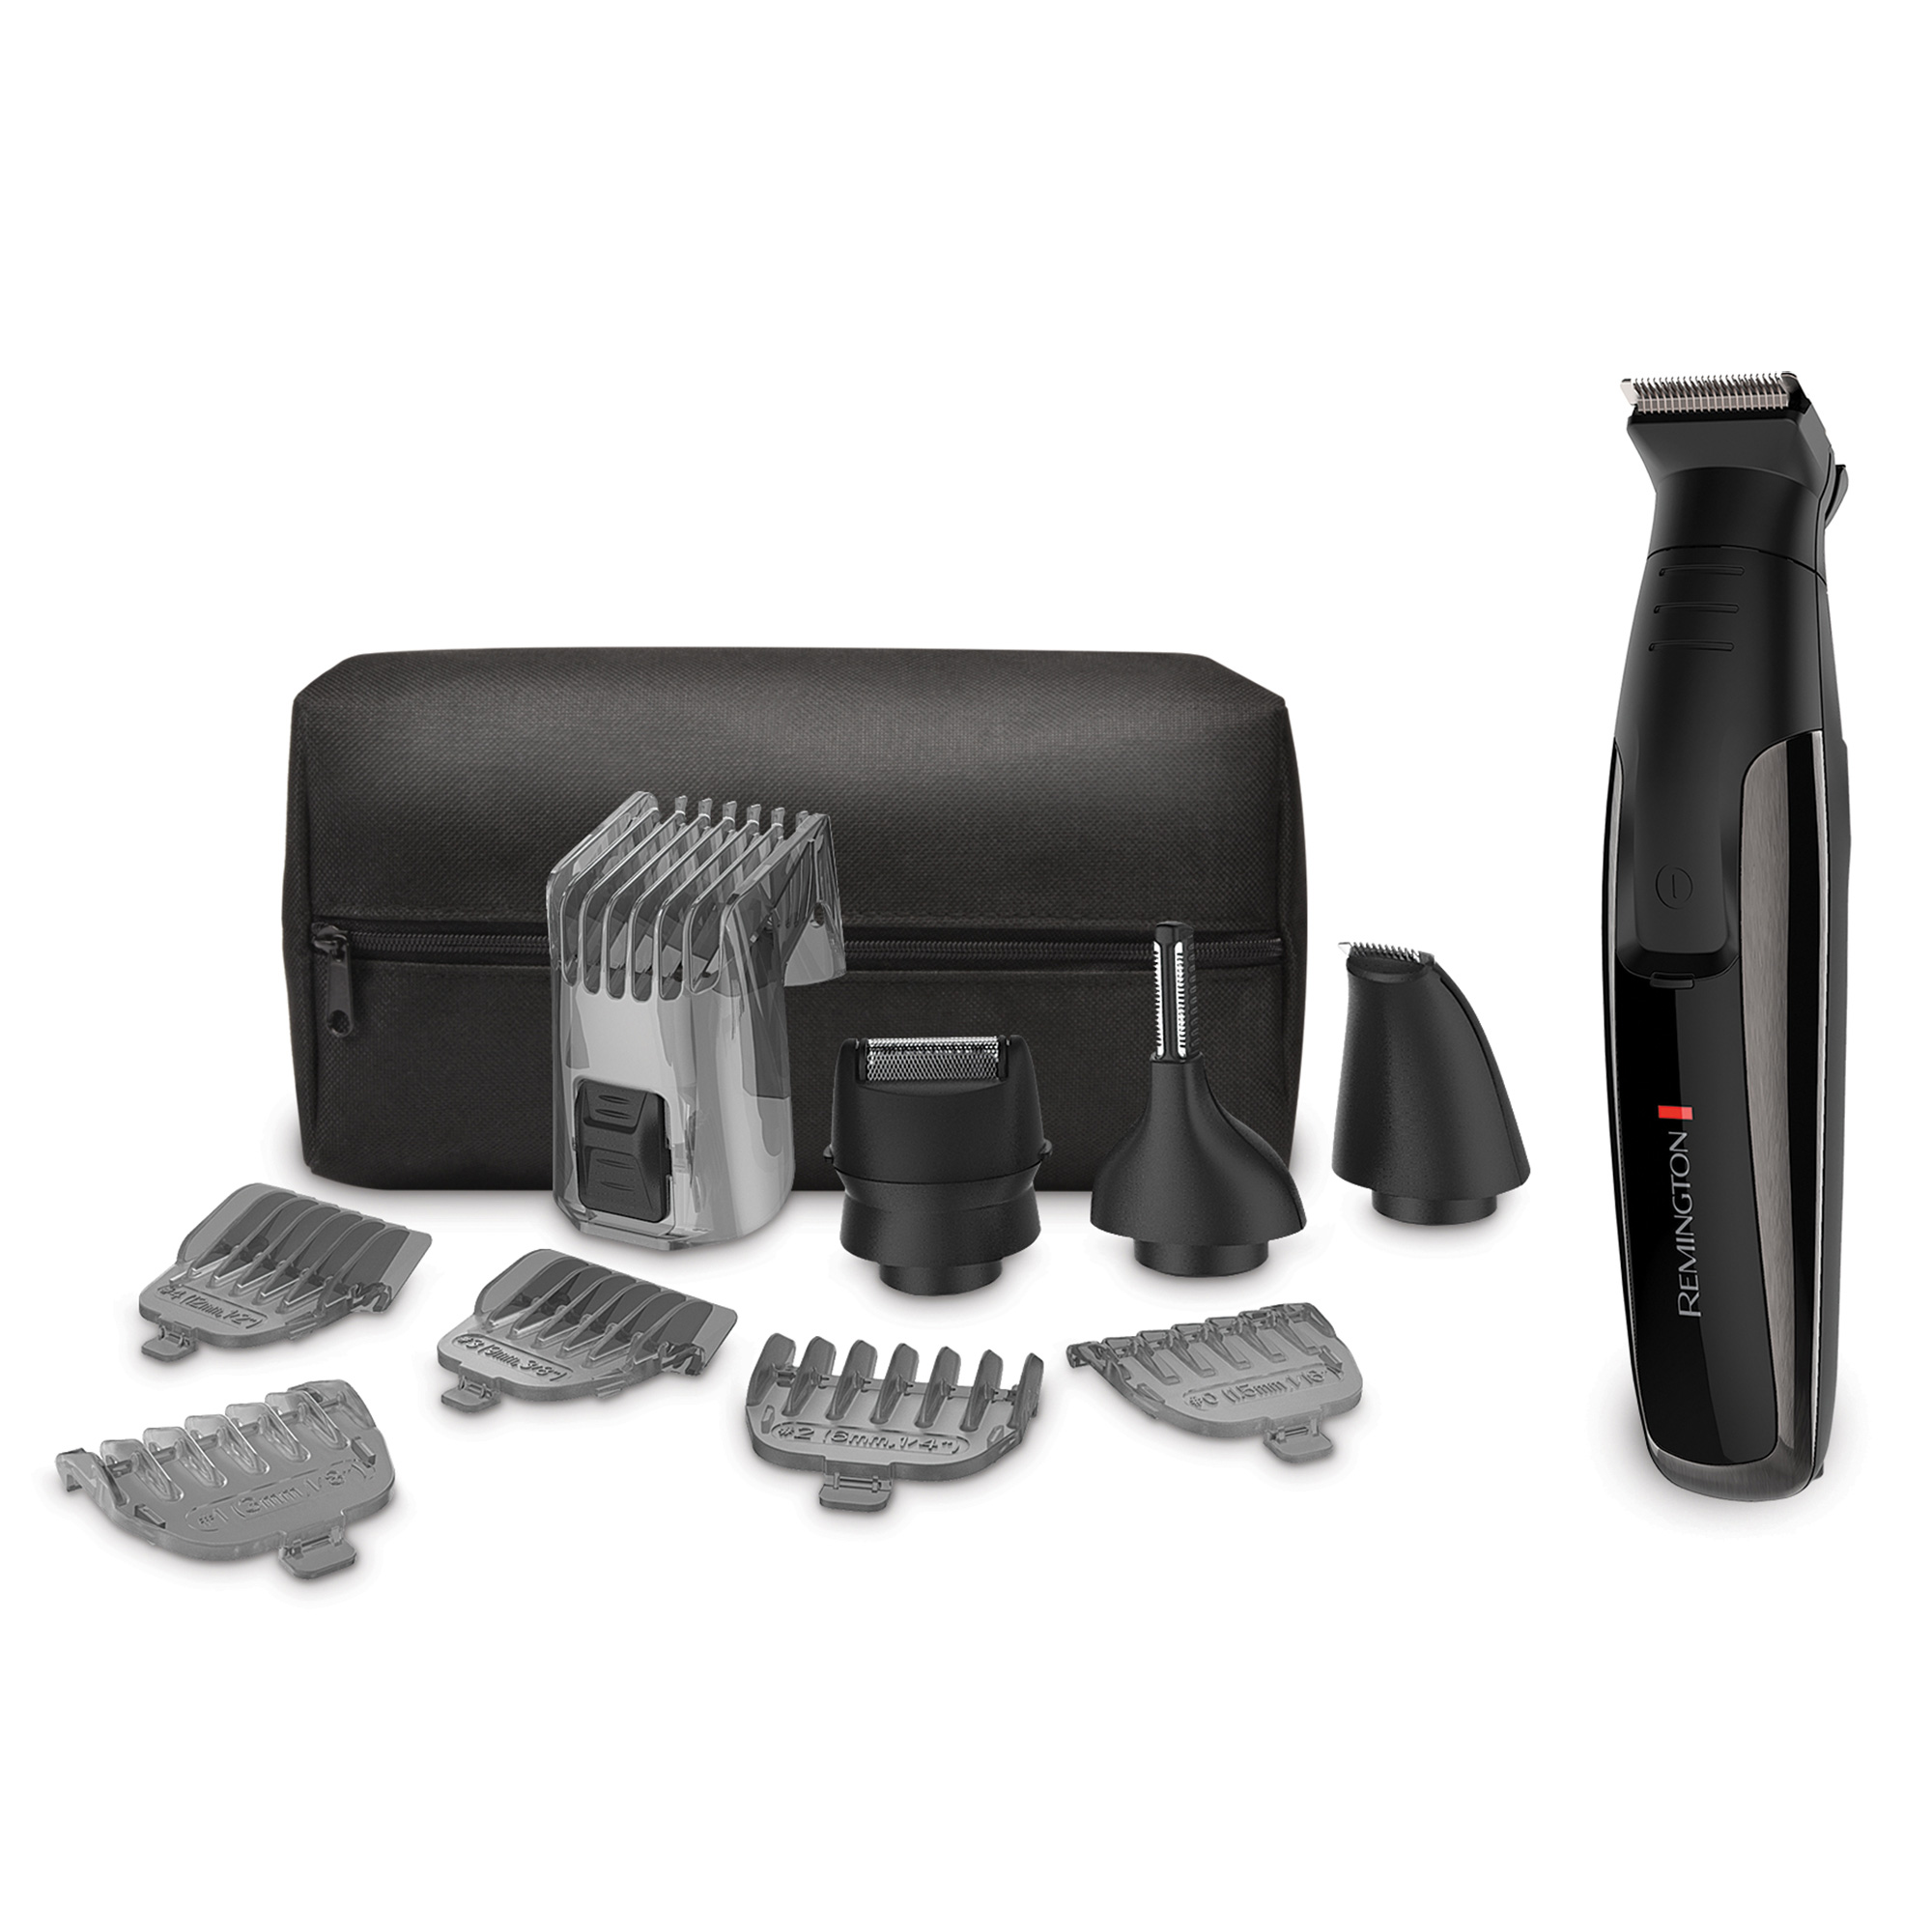 Remington Beard Boss The Crafter Style and Detail Kit, Black, PG6171